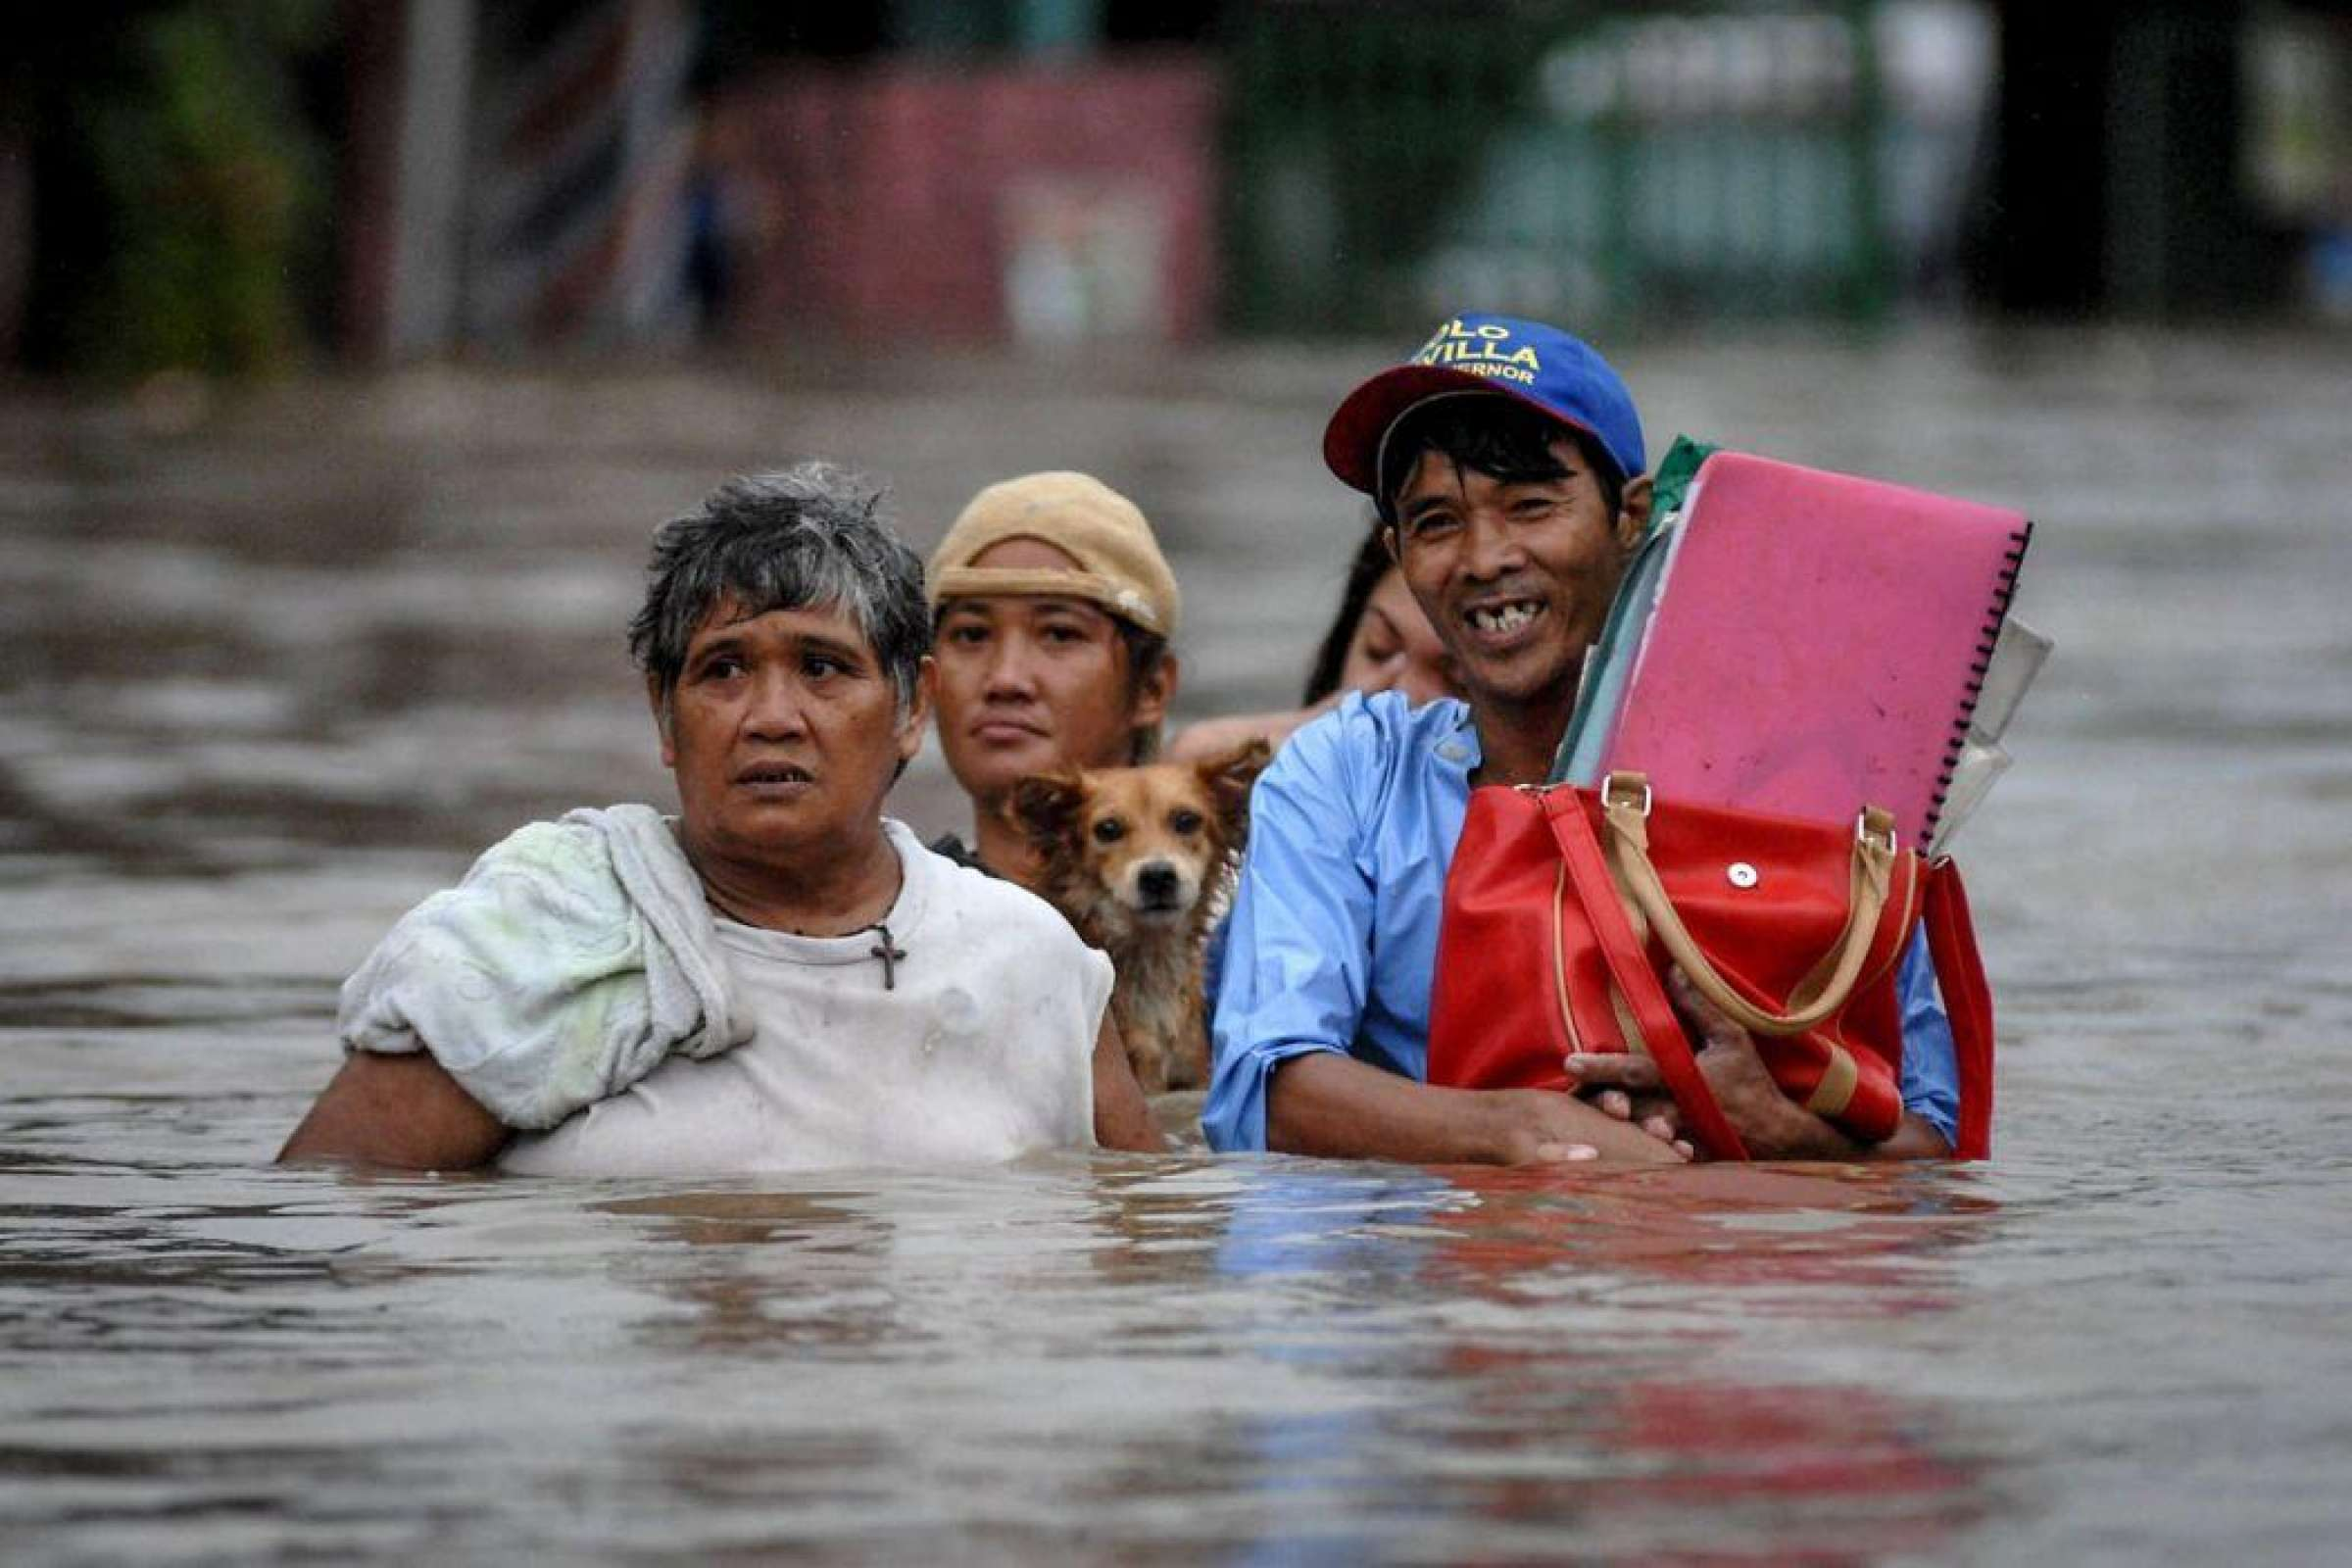 Dog And Family In The Philippines In Flood